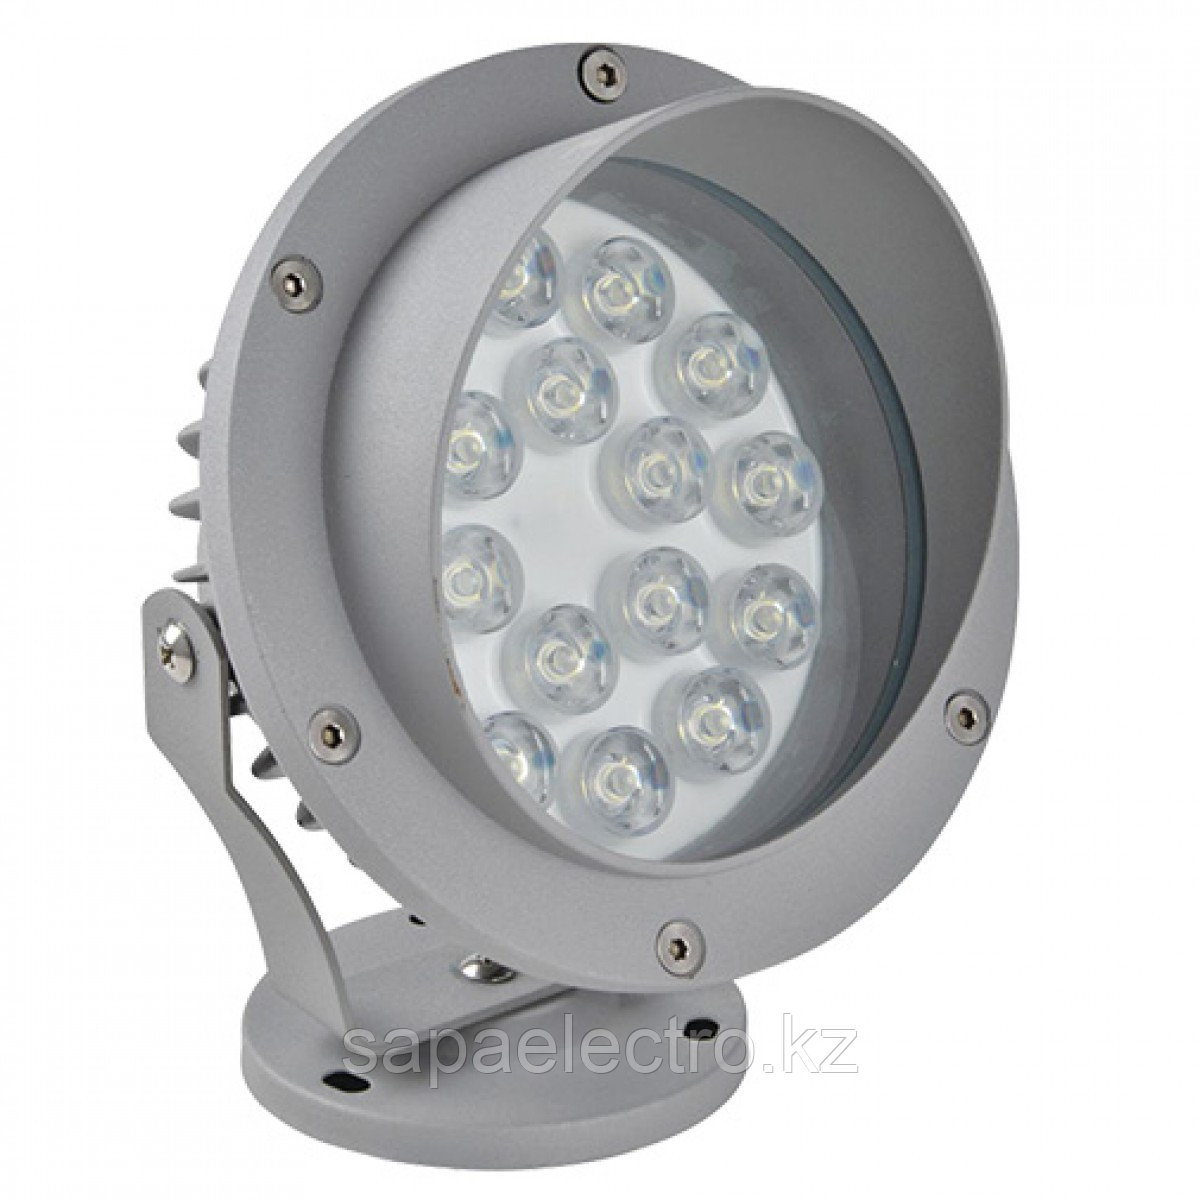 Свет-к LED SP002 18W 6000K  (TS) 12шт